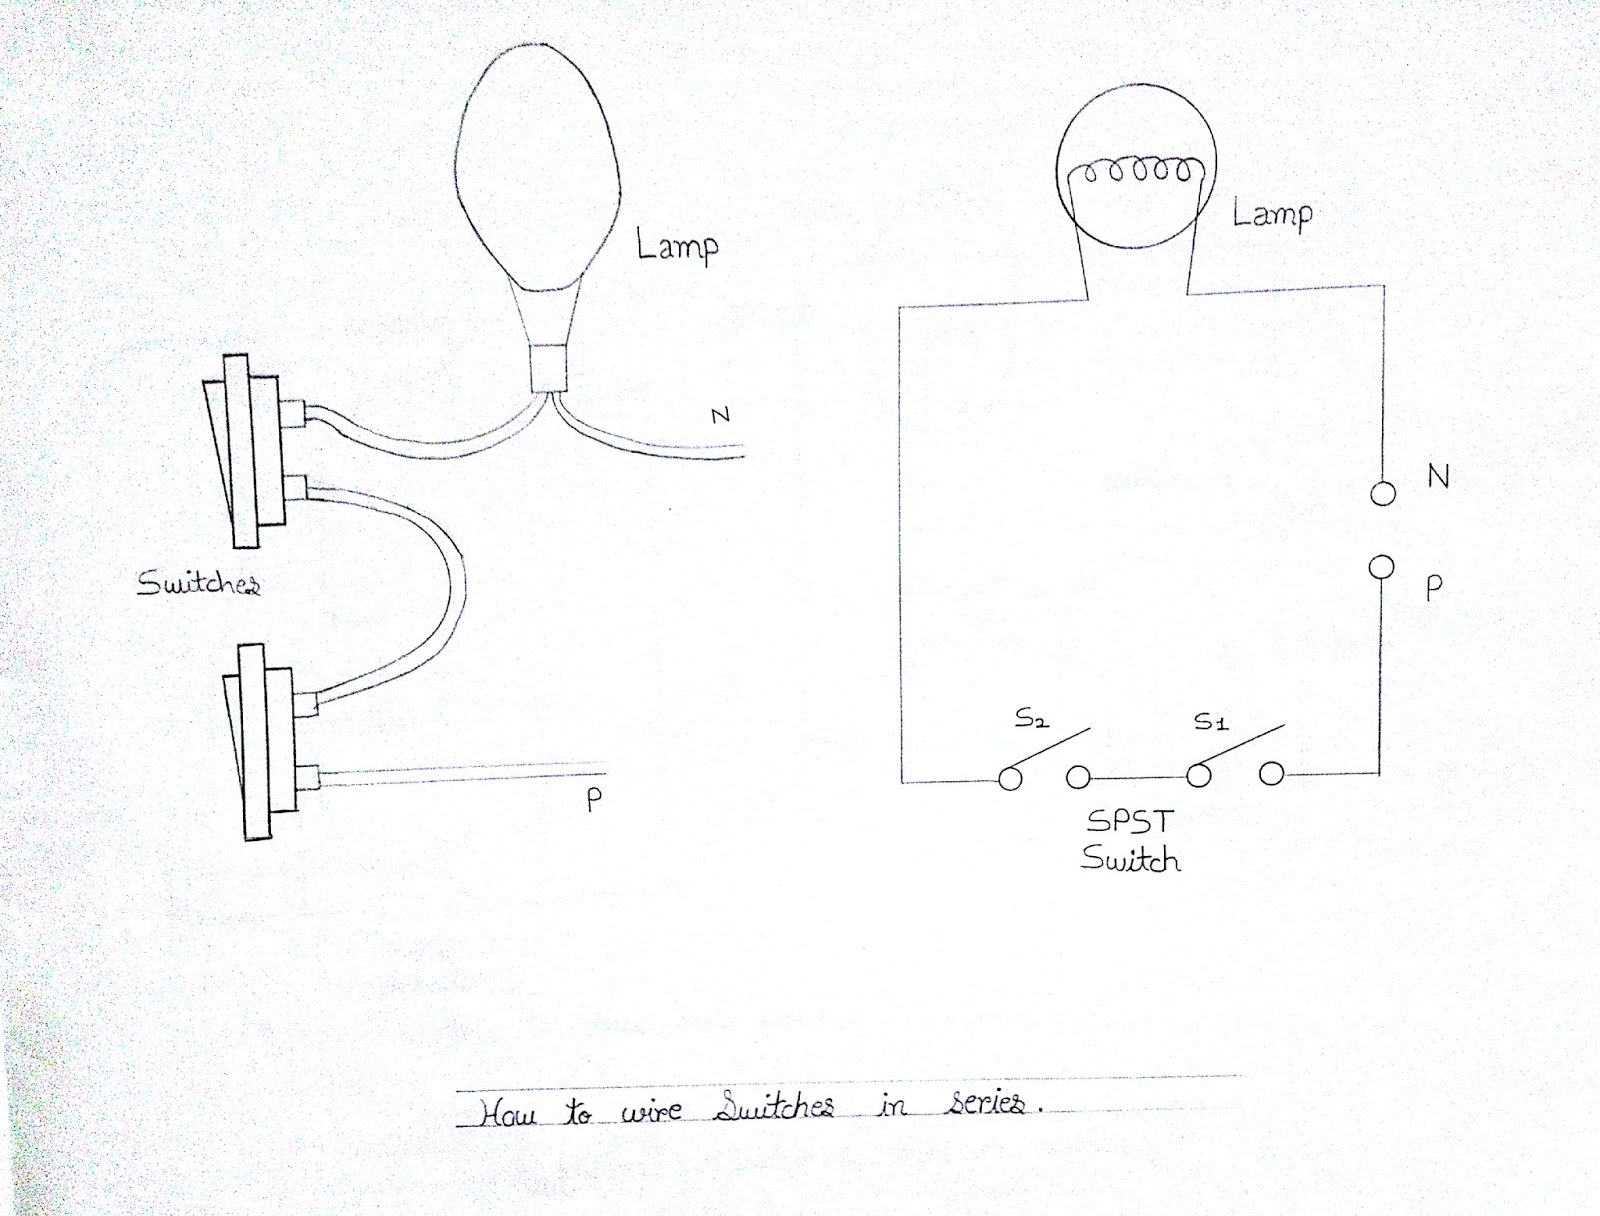 learn electrician  electrical wiring diagrams of switches